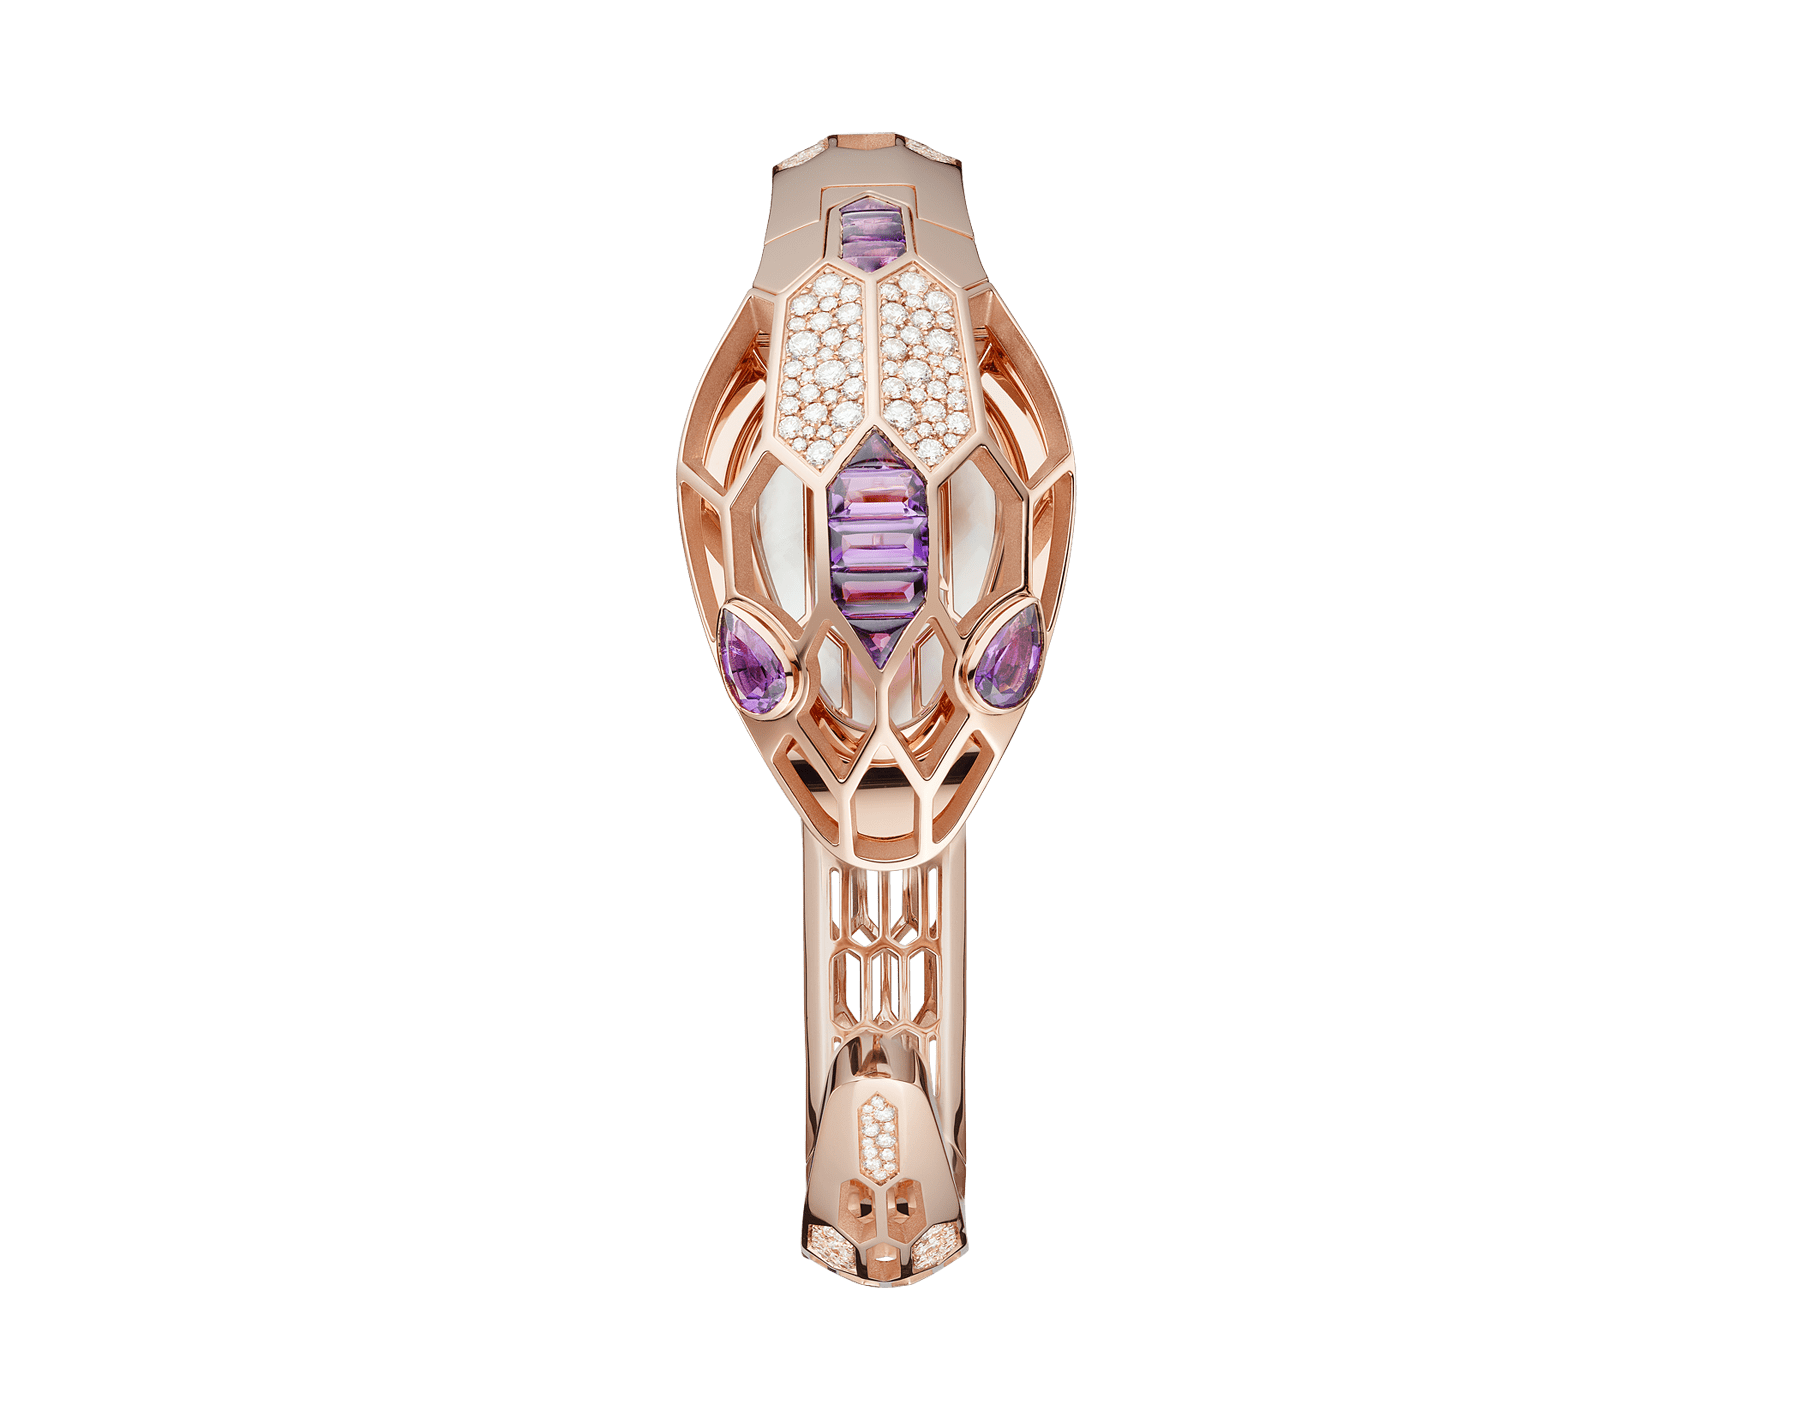 Serpenti Misteriosi Secret Watch in 18 kt rose gold case and bracelet both set with round brilliant-cut diamonds and baguette-cut amethysts, mother-of-pearl dial and pear shaped amethyst eyes. Medium size 103056 image 2